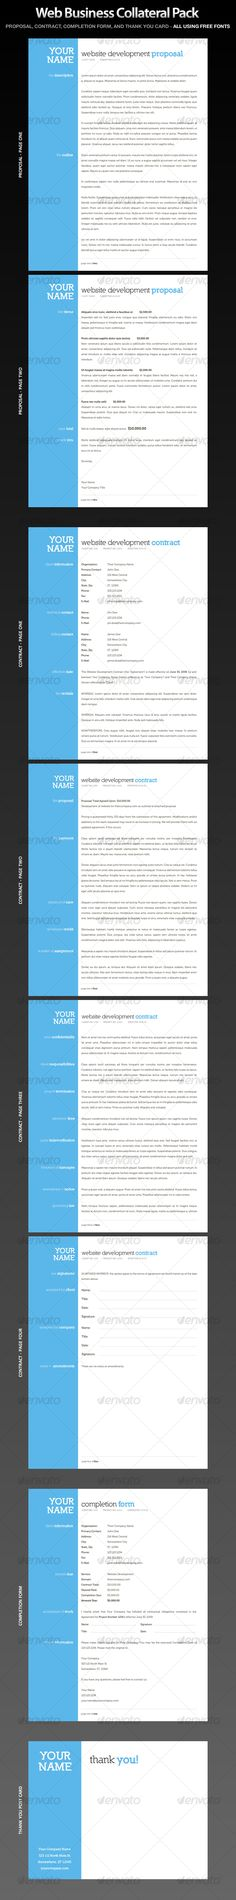 14 best Corporate Proposal Templates for Inspiration images on - Sample Contract Proposal Template